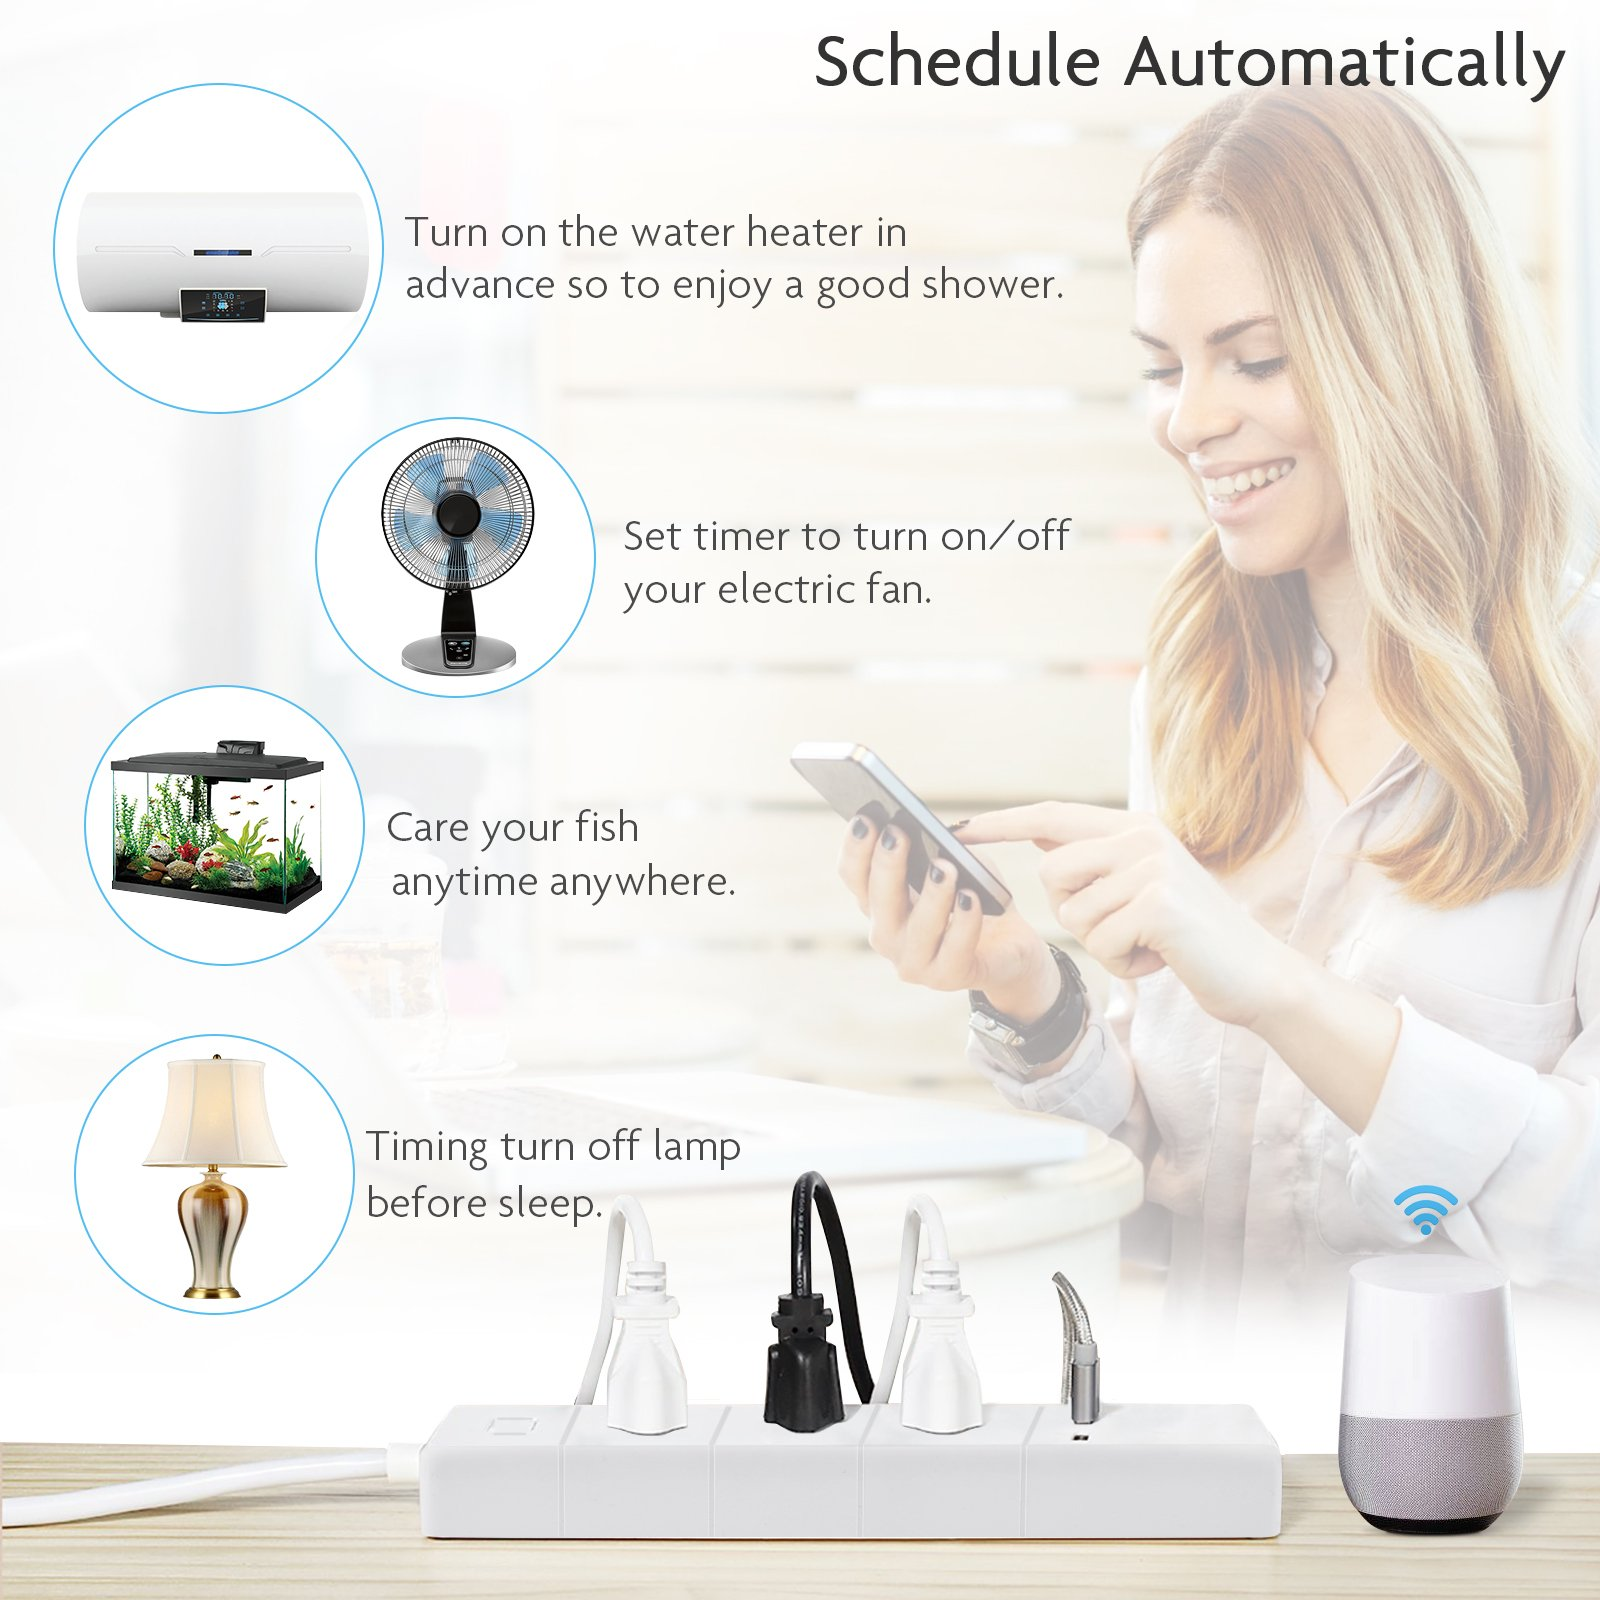 Smalux WiFi Smart Power Strip Socket Compatible with Alexa/Google Home/IFTTT, 3 AC Outlets2 USB Port,Remote Control and Timing Function Voice Control,No Hub Required,Surge Protector,White